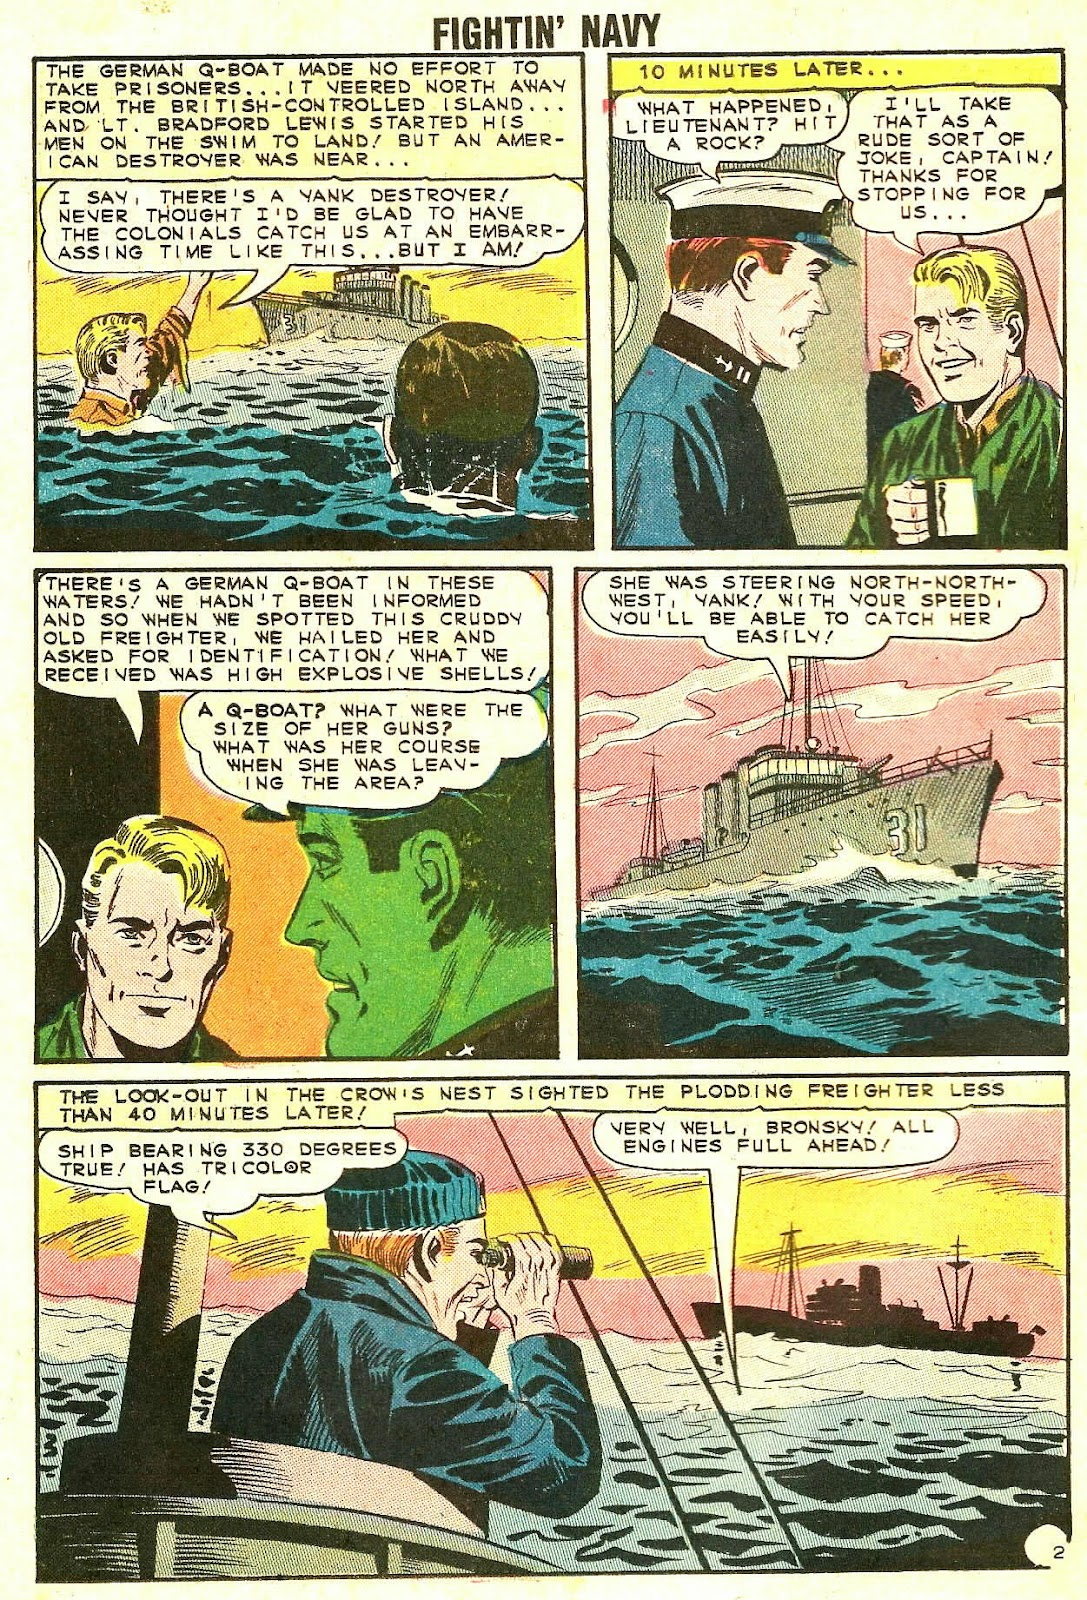 Read online Fightin' Navy comic -  Issue #118 - 26